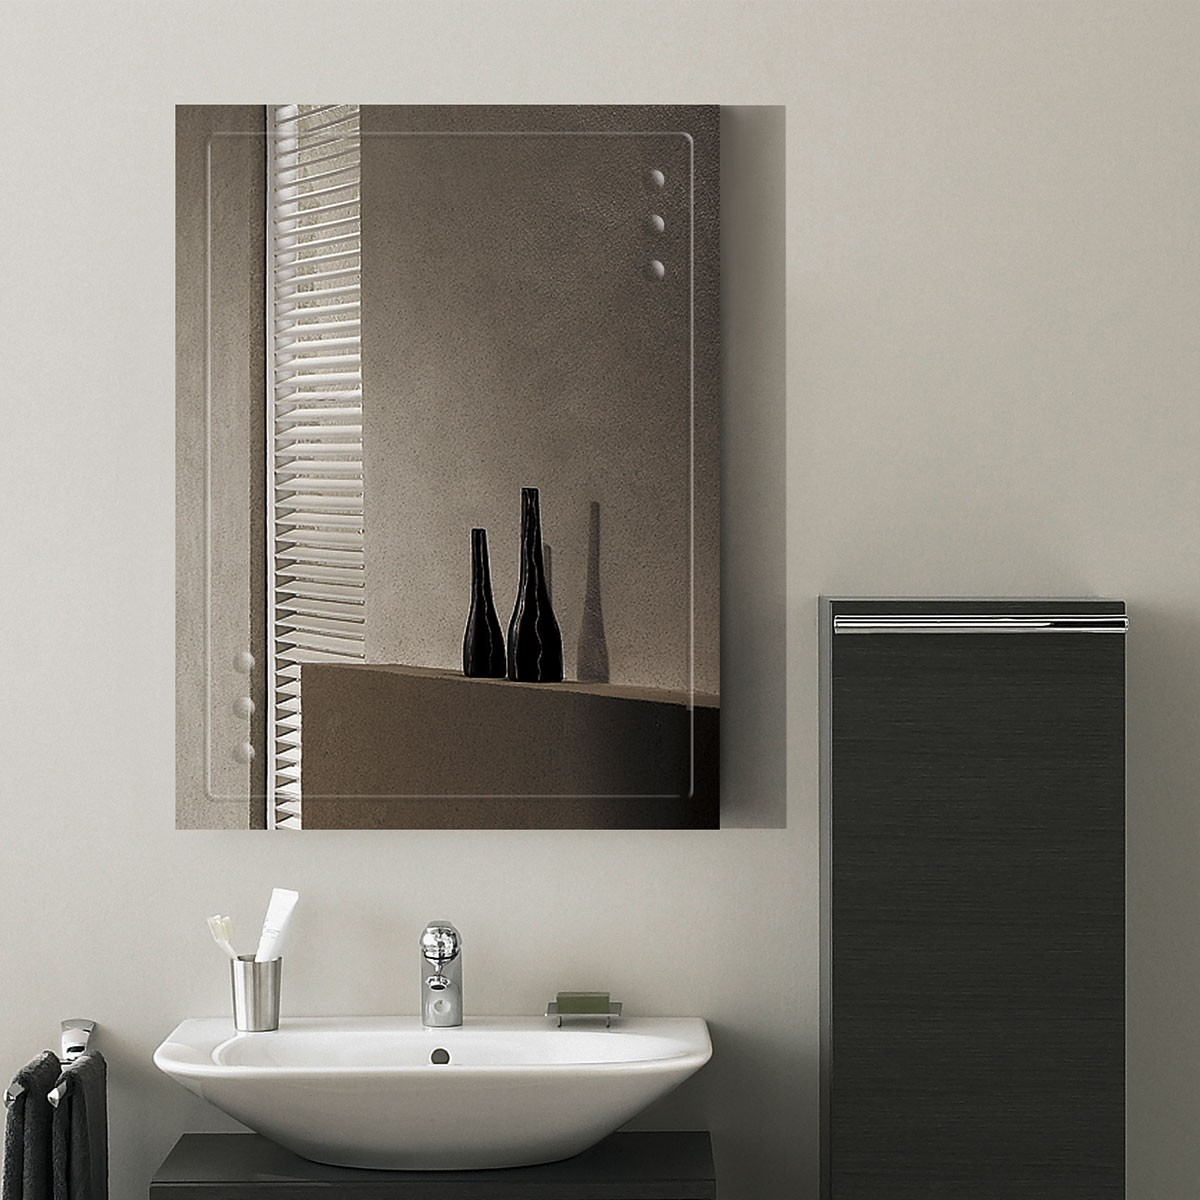 24 x 18 in wall mounted rectangle bathroom mirror dk od for Mirror 18 x 24